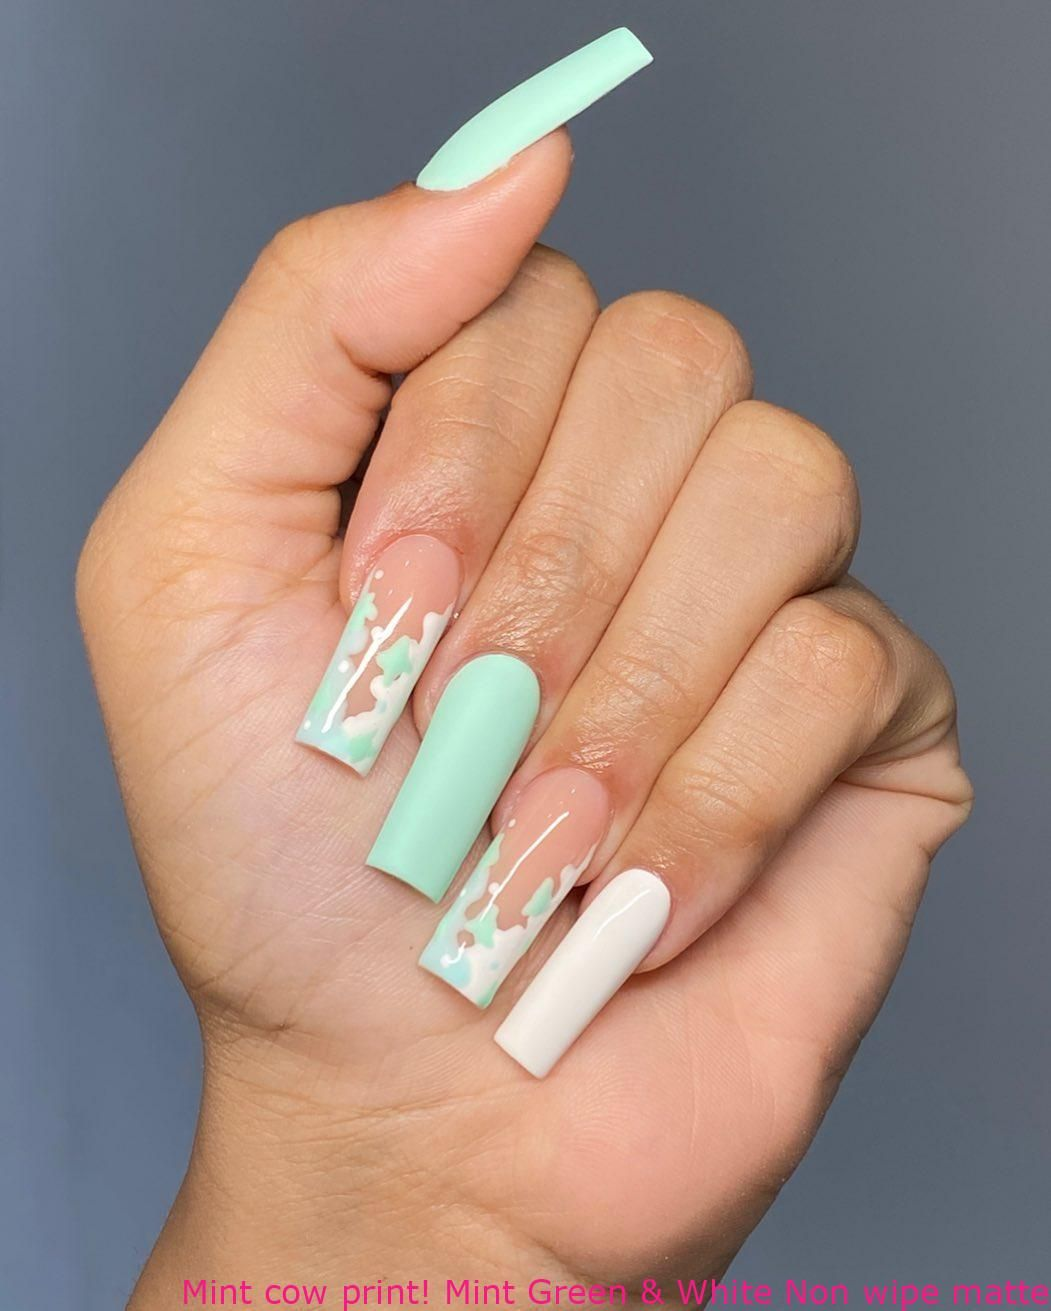 Acrylic Nails Mint Cow Print Mint Green White Non Wipe Matte Top Sculpted Square Tips In 2020 Acrylic Nails Best Acrylic Nails Square Acrylic Nails